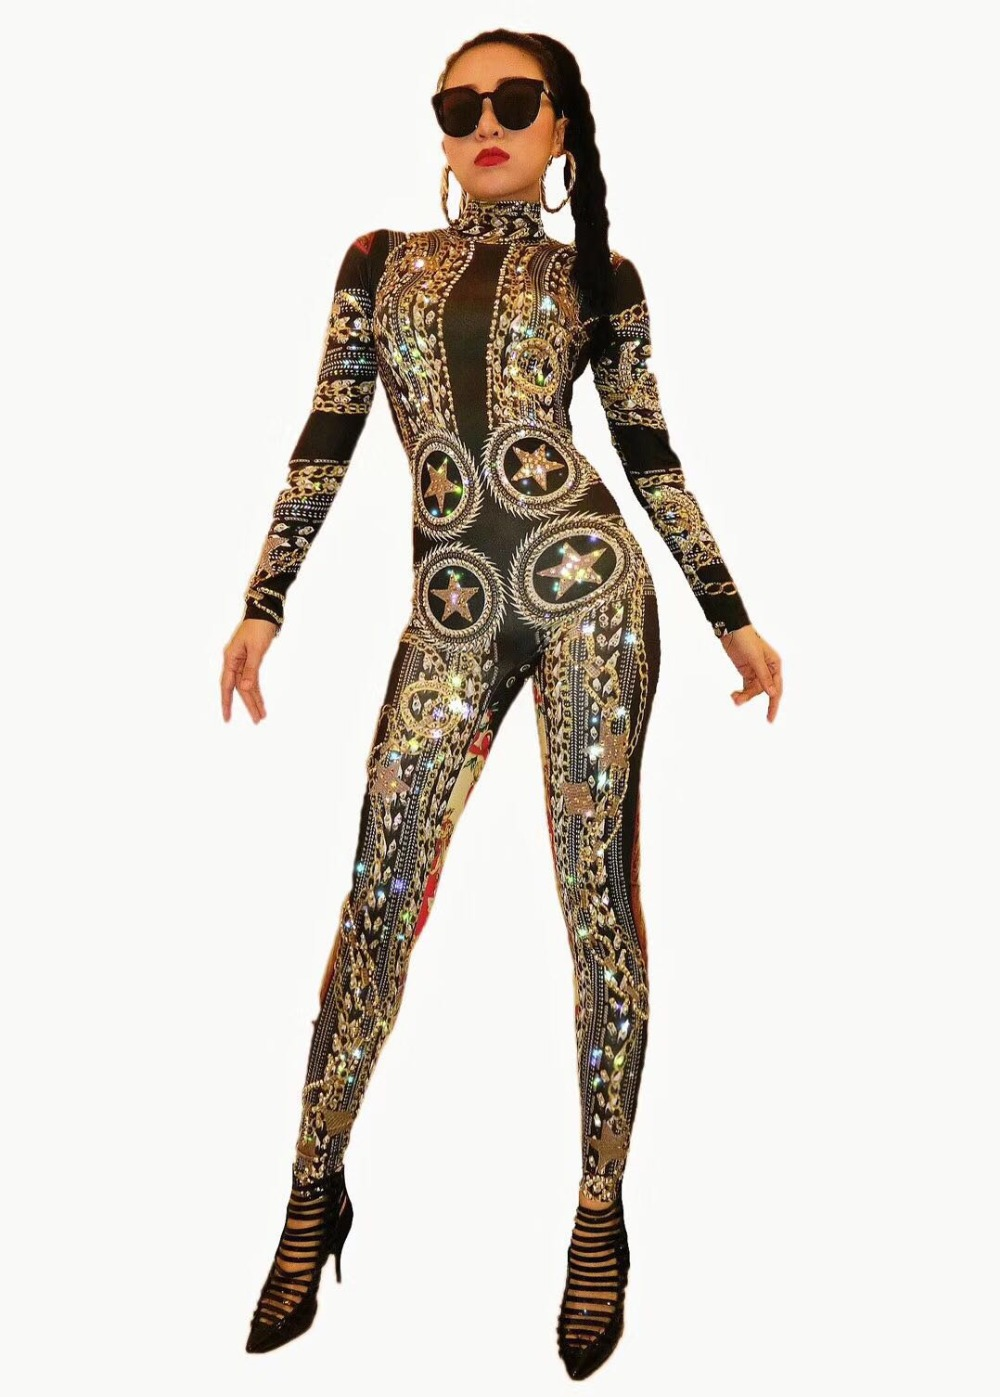 Mouse over to zoom in. Gold Spandex Printed Stretch Rhinestones Jumpsuit  Women s Sexy Bodysuit Costume Stage Outfit Singer ... e545c33c1cdc